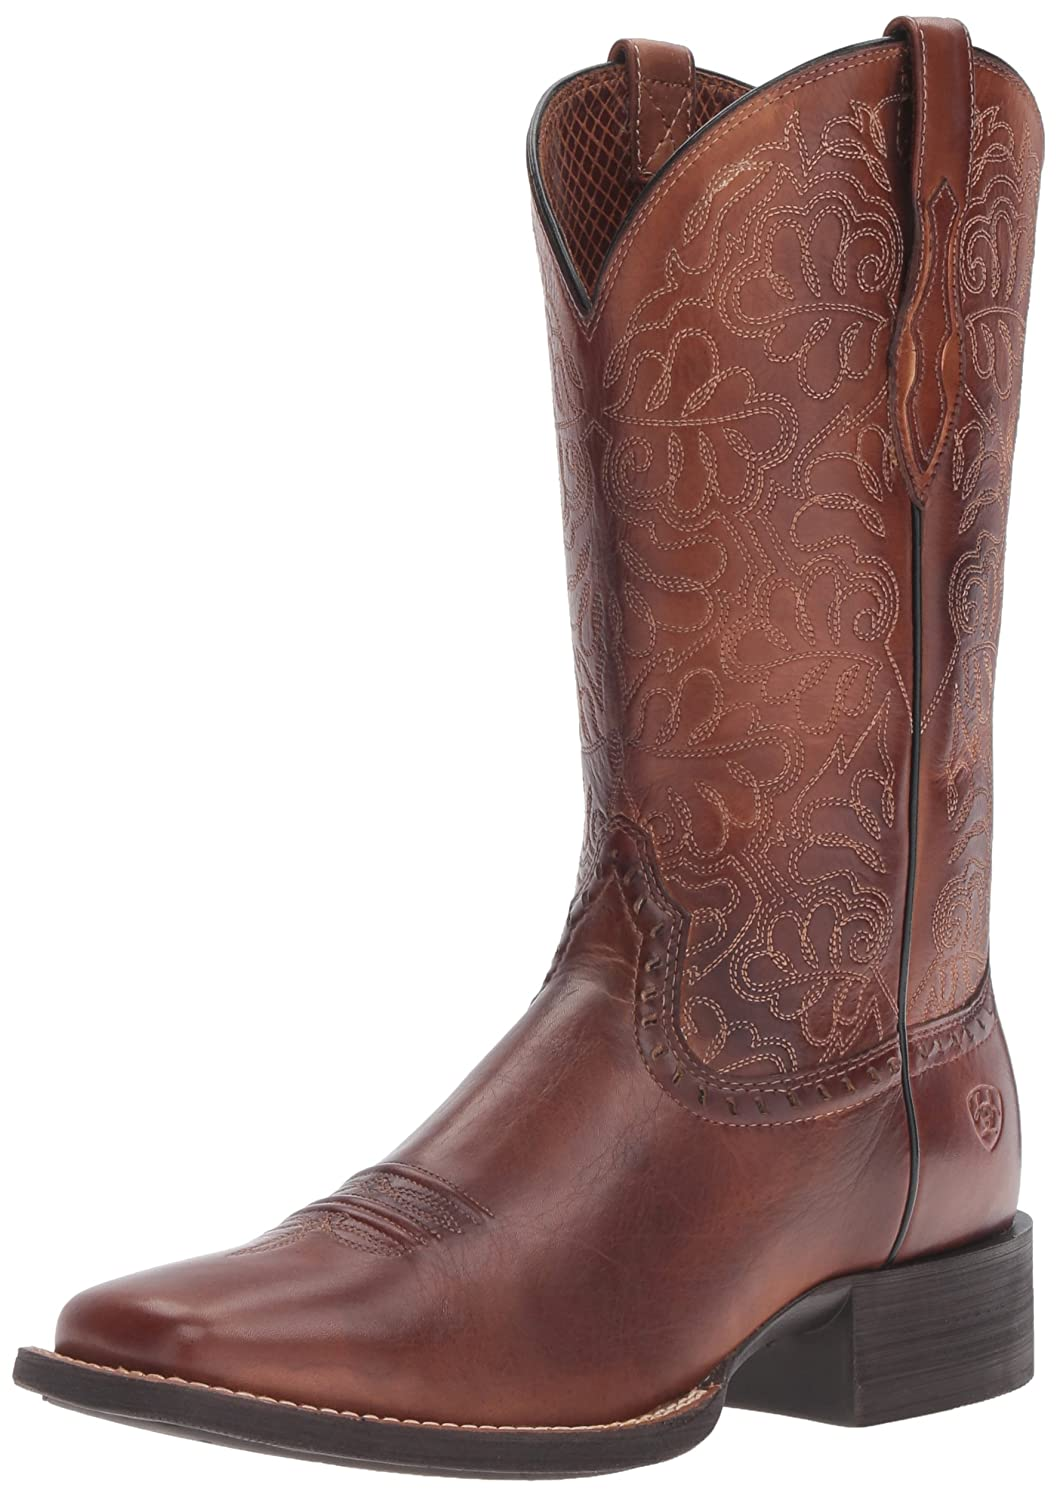 Ariat Women's Round up Remuda Western Cowboy Boot B01L91JB7Q 7.5 B(M) US|Naturally Rich